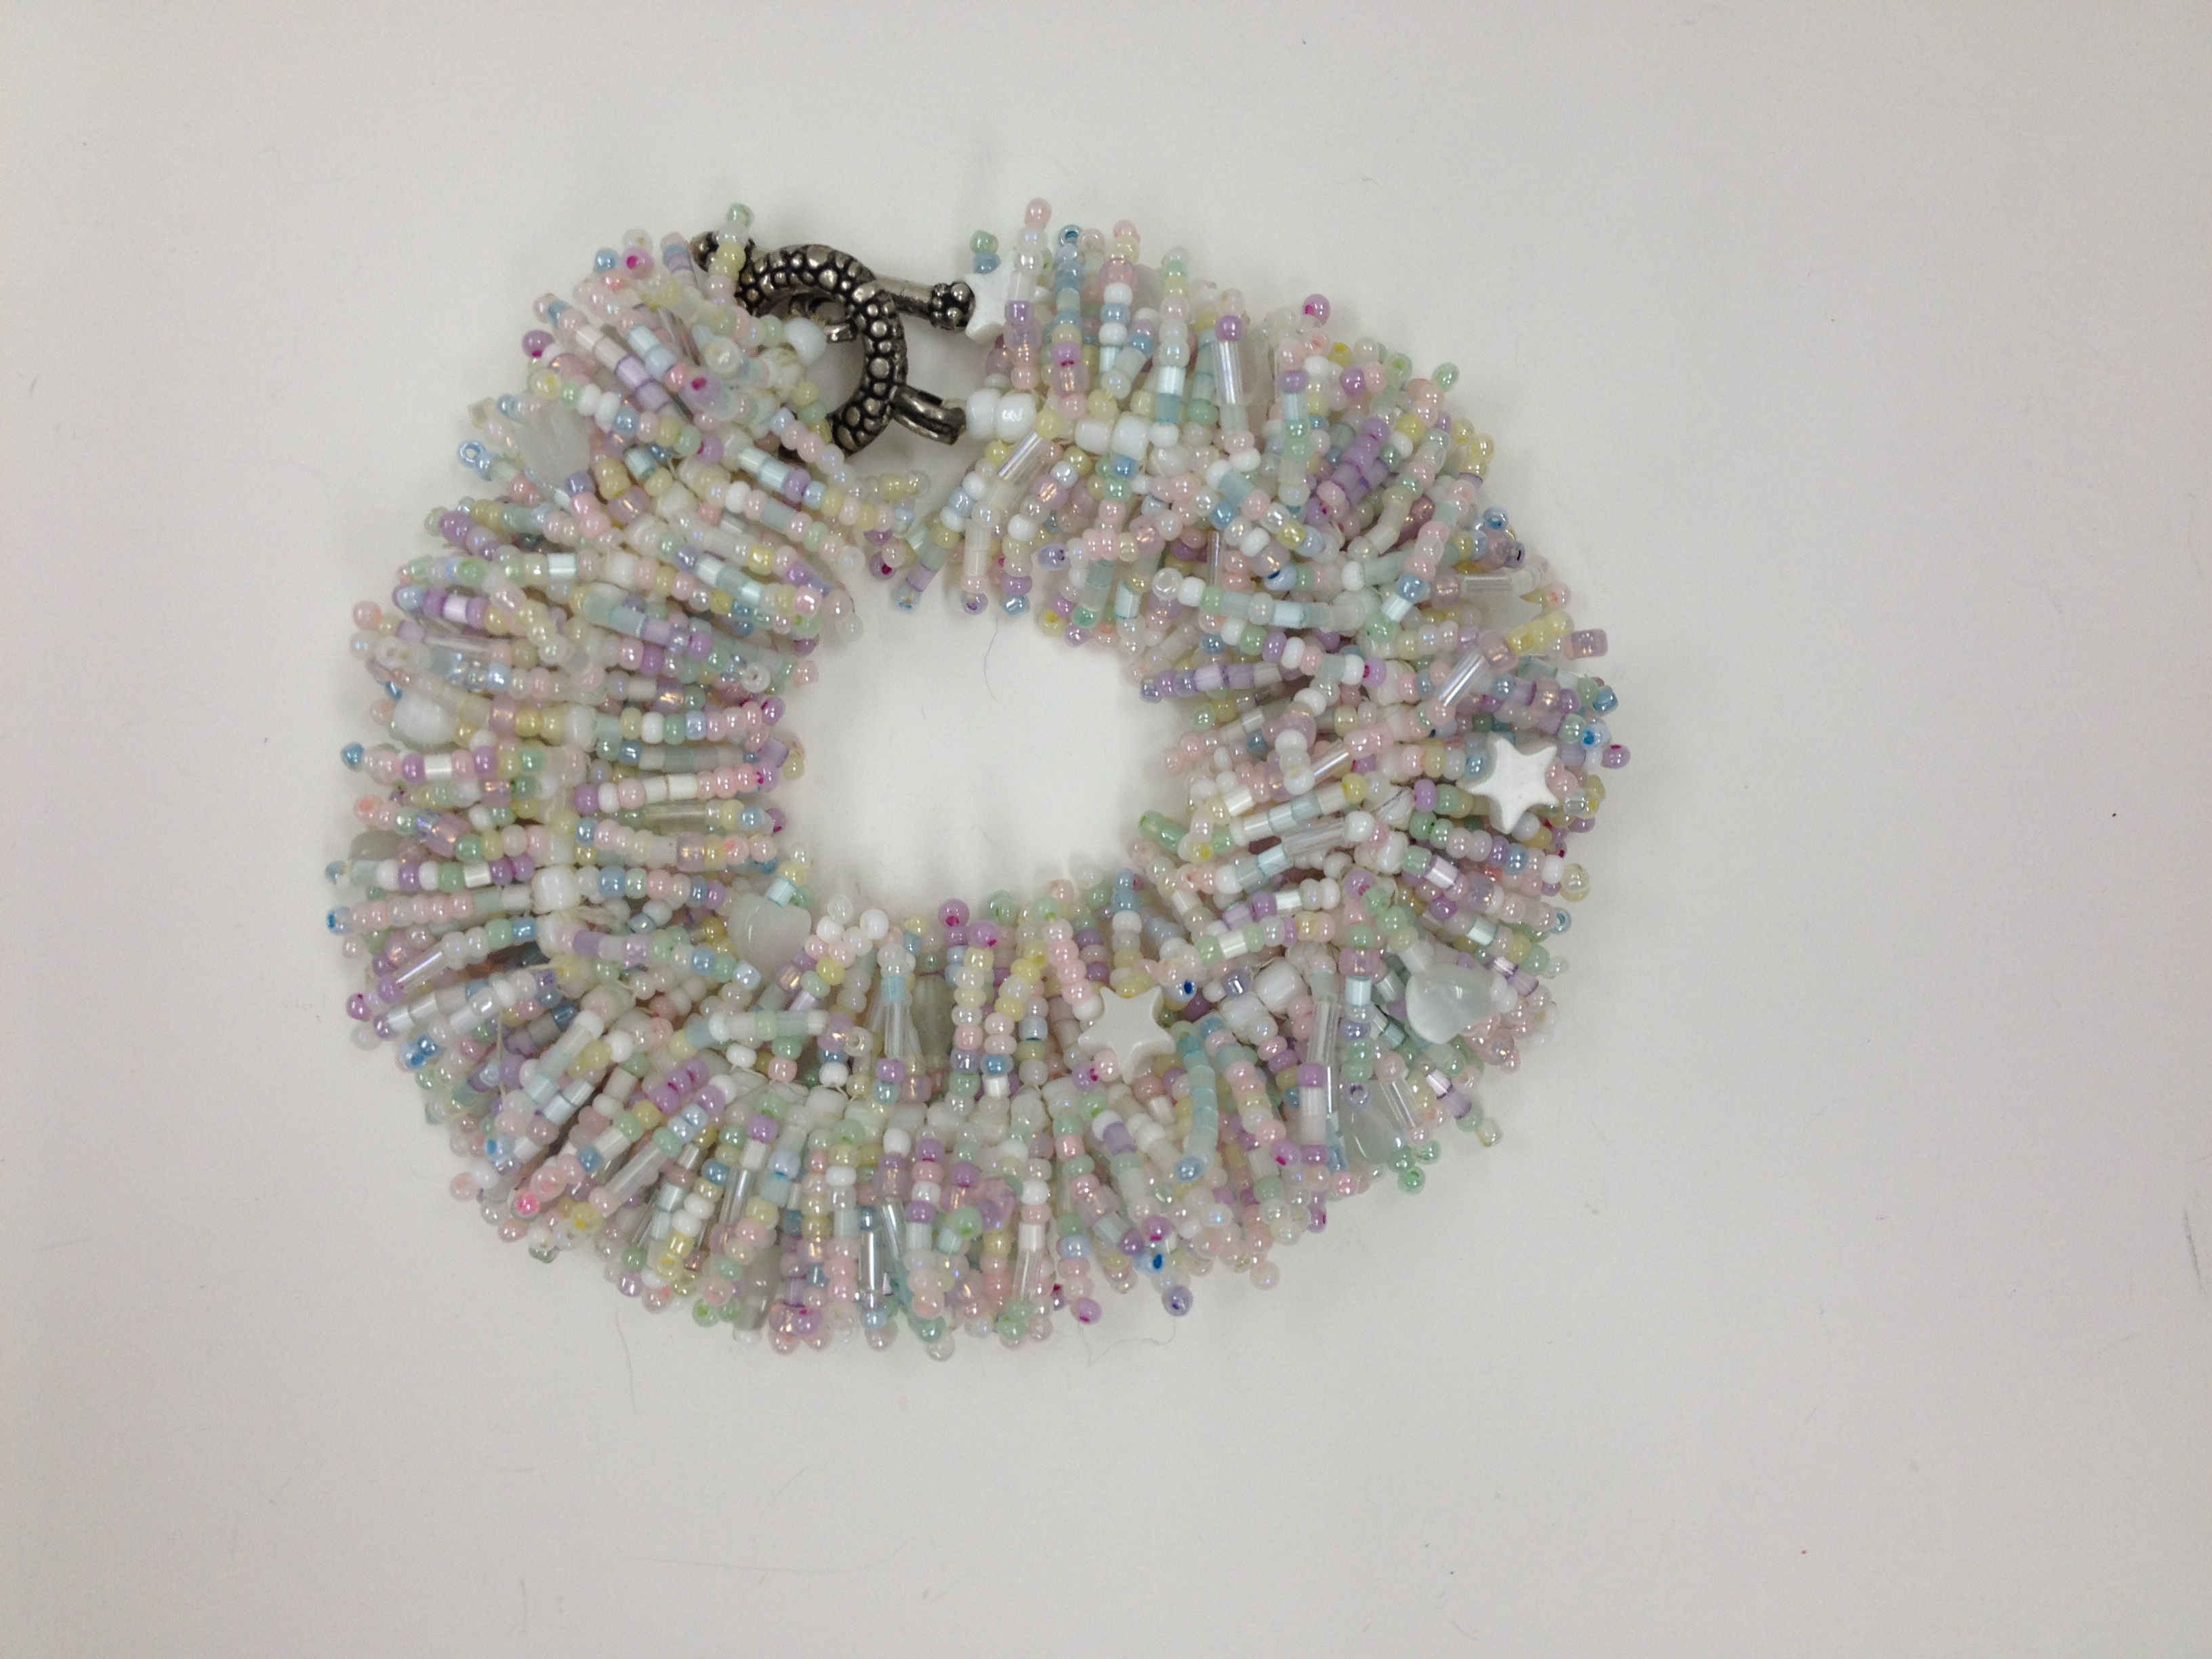 Shaggy Spike Bracelet in white and pastel